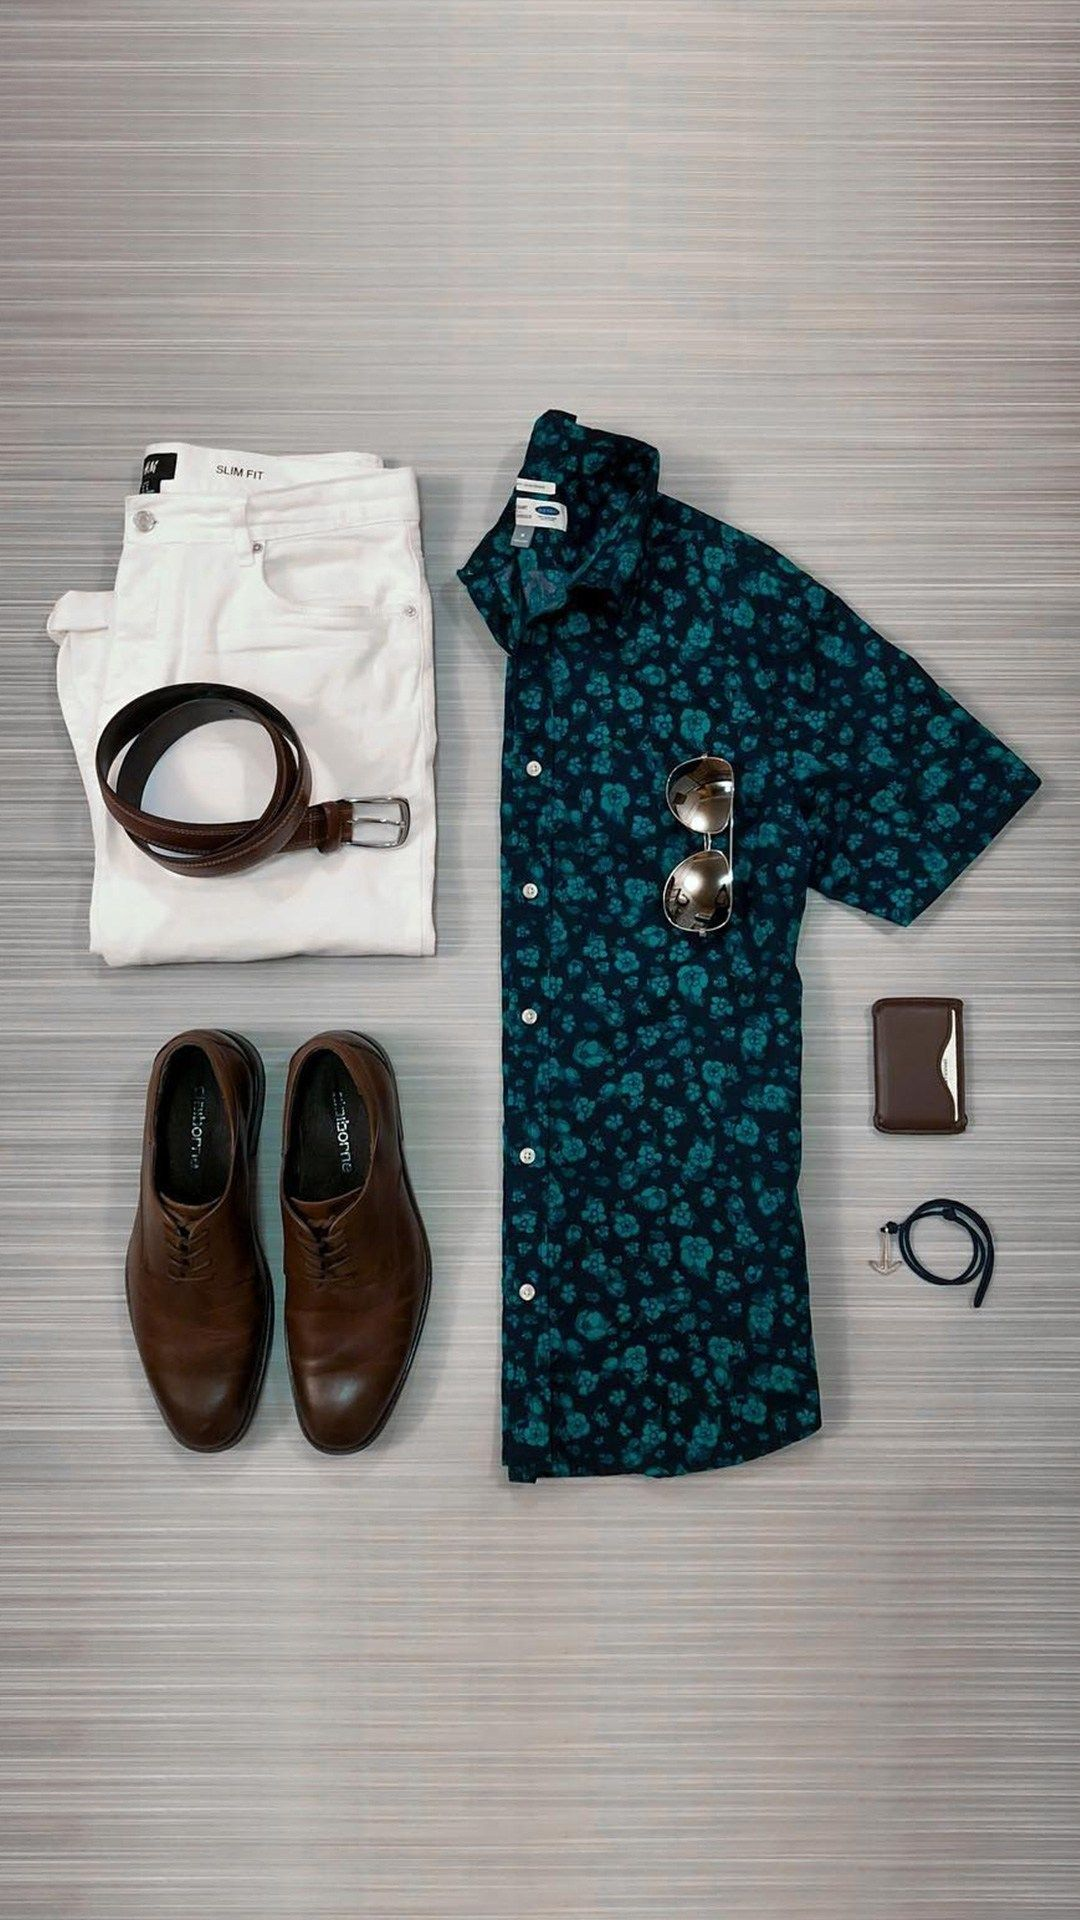 15 Trendy Outfit Grids For Men To Stay In Style